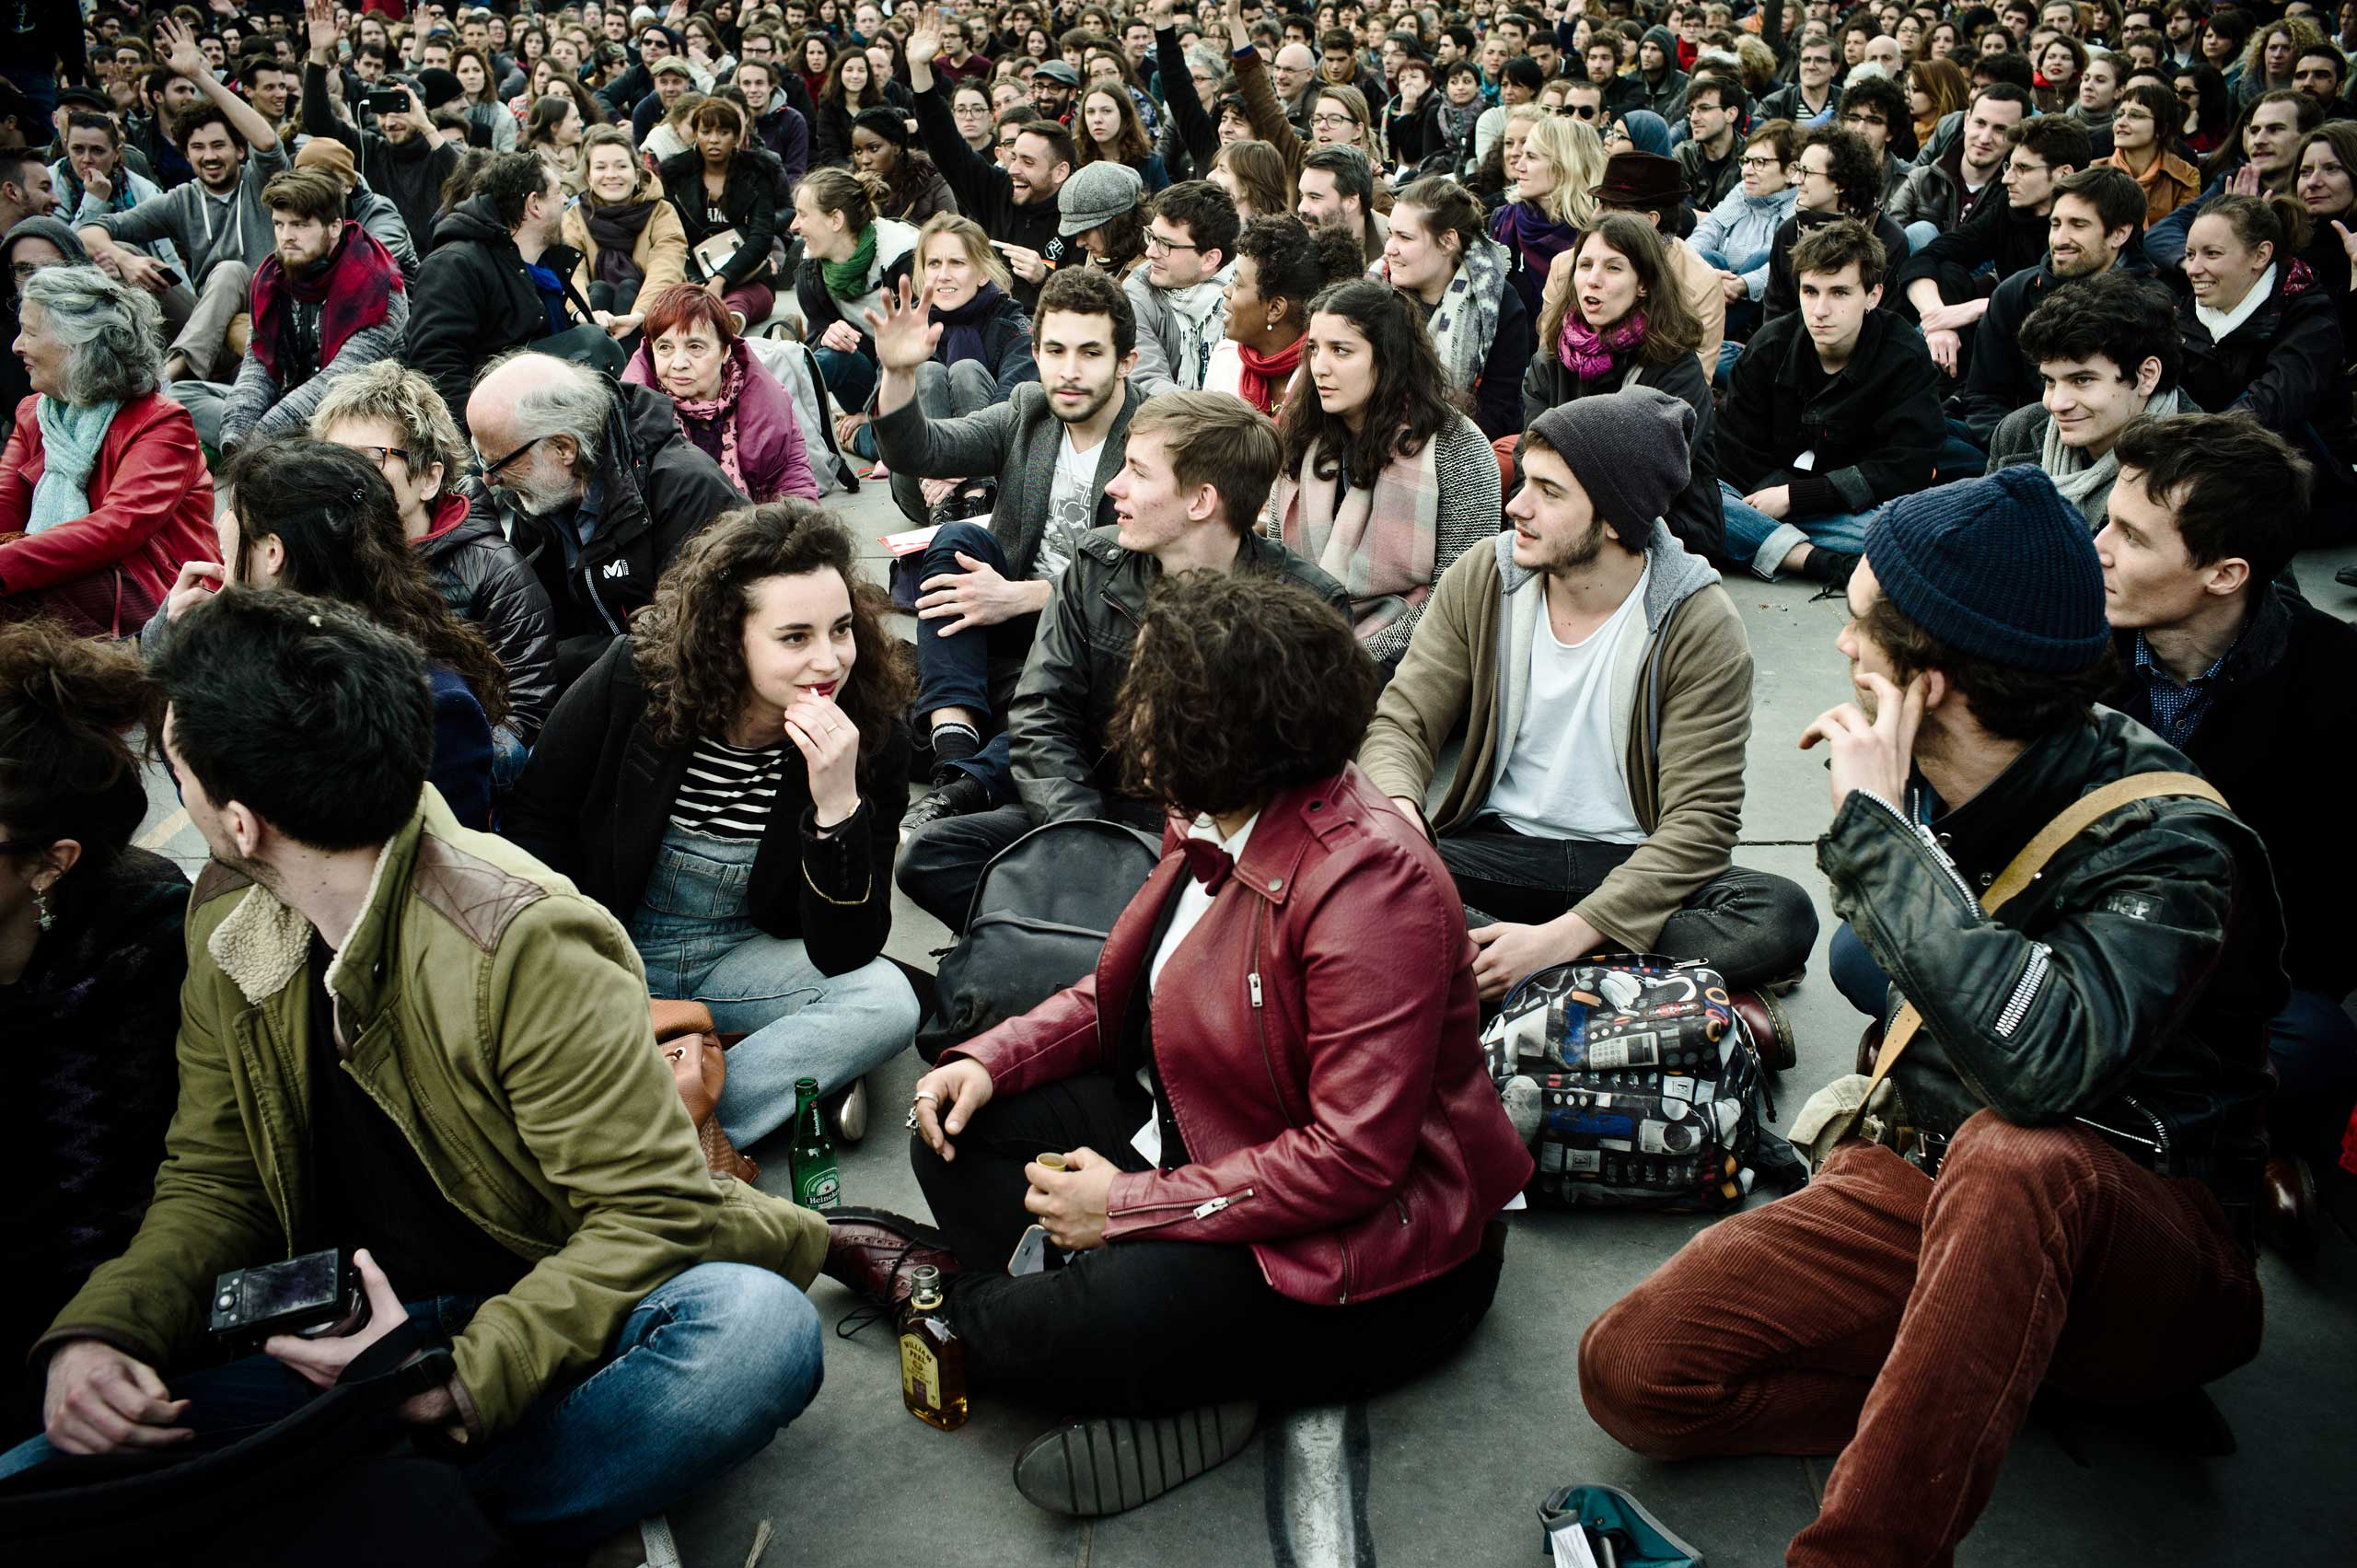 At the Nuit Debout, the General Assembly (from 6:00 pm to 11:00 pm) validates the decisions of the various committees.